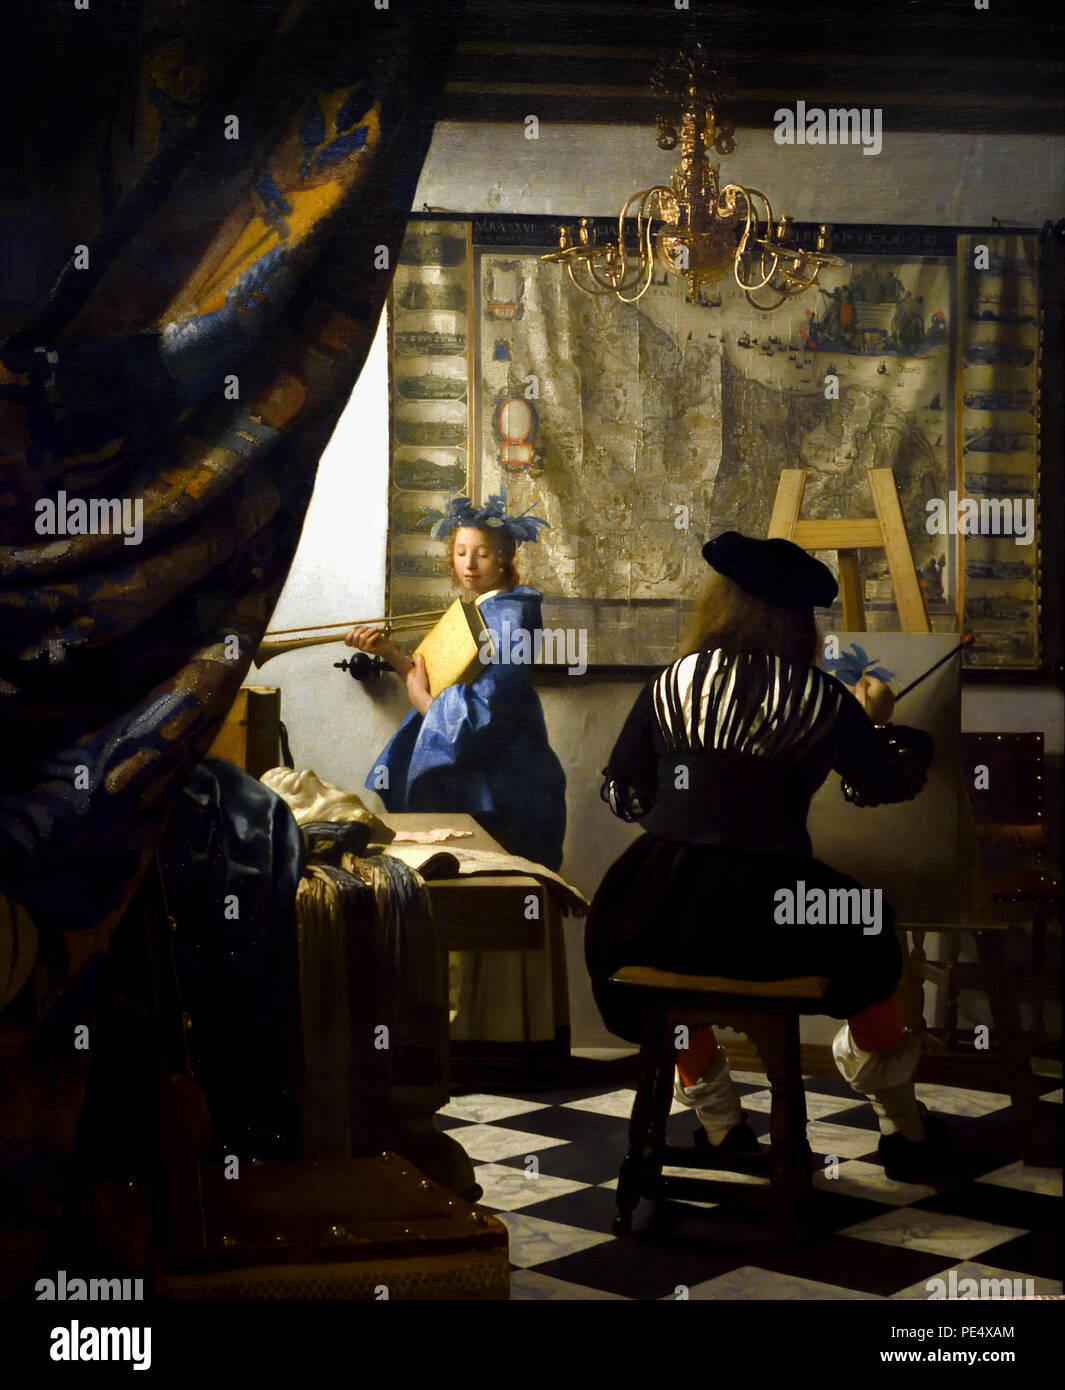 The painting art by Johannes Vermeer 1632 - 1675 The Netherlands, Dutch, ( The painting art With the representation of the painter in the studio Vermeer exaggerates the genre image to an allegory of painting. His model poses as Klio ) - Stock Image